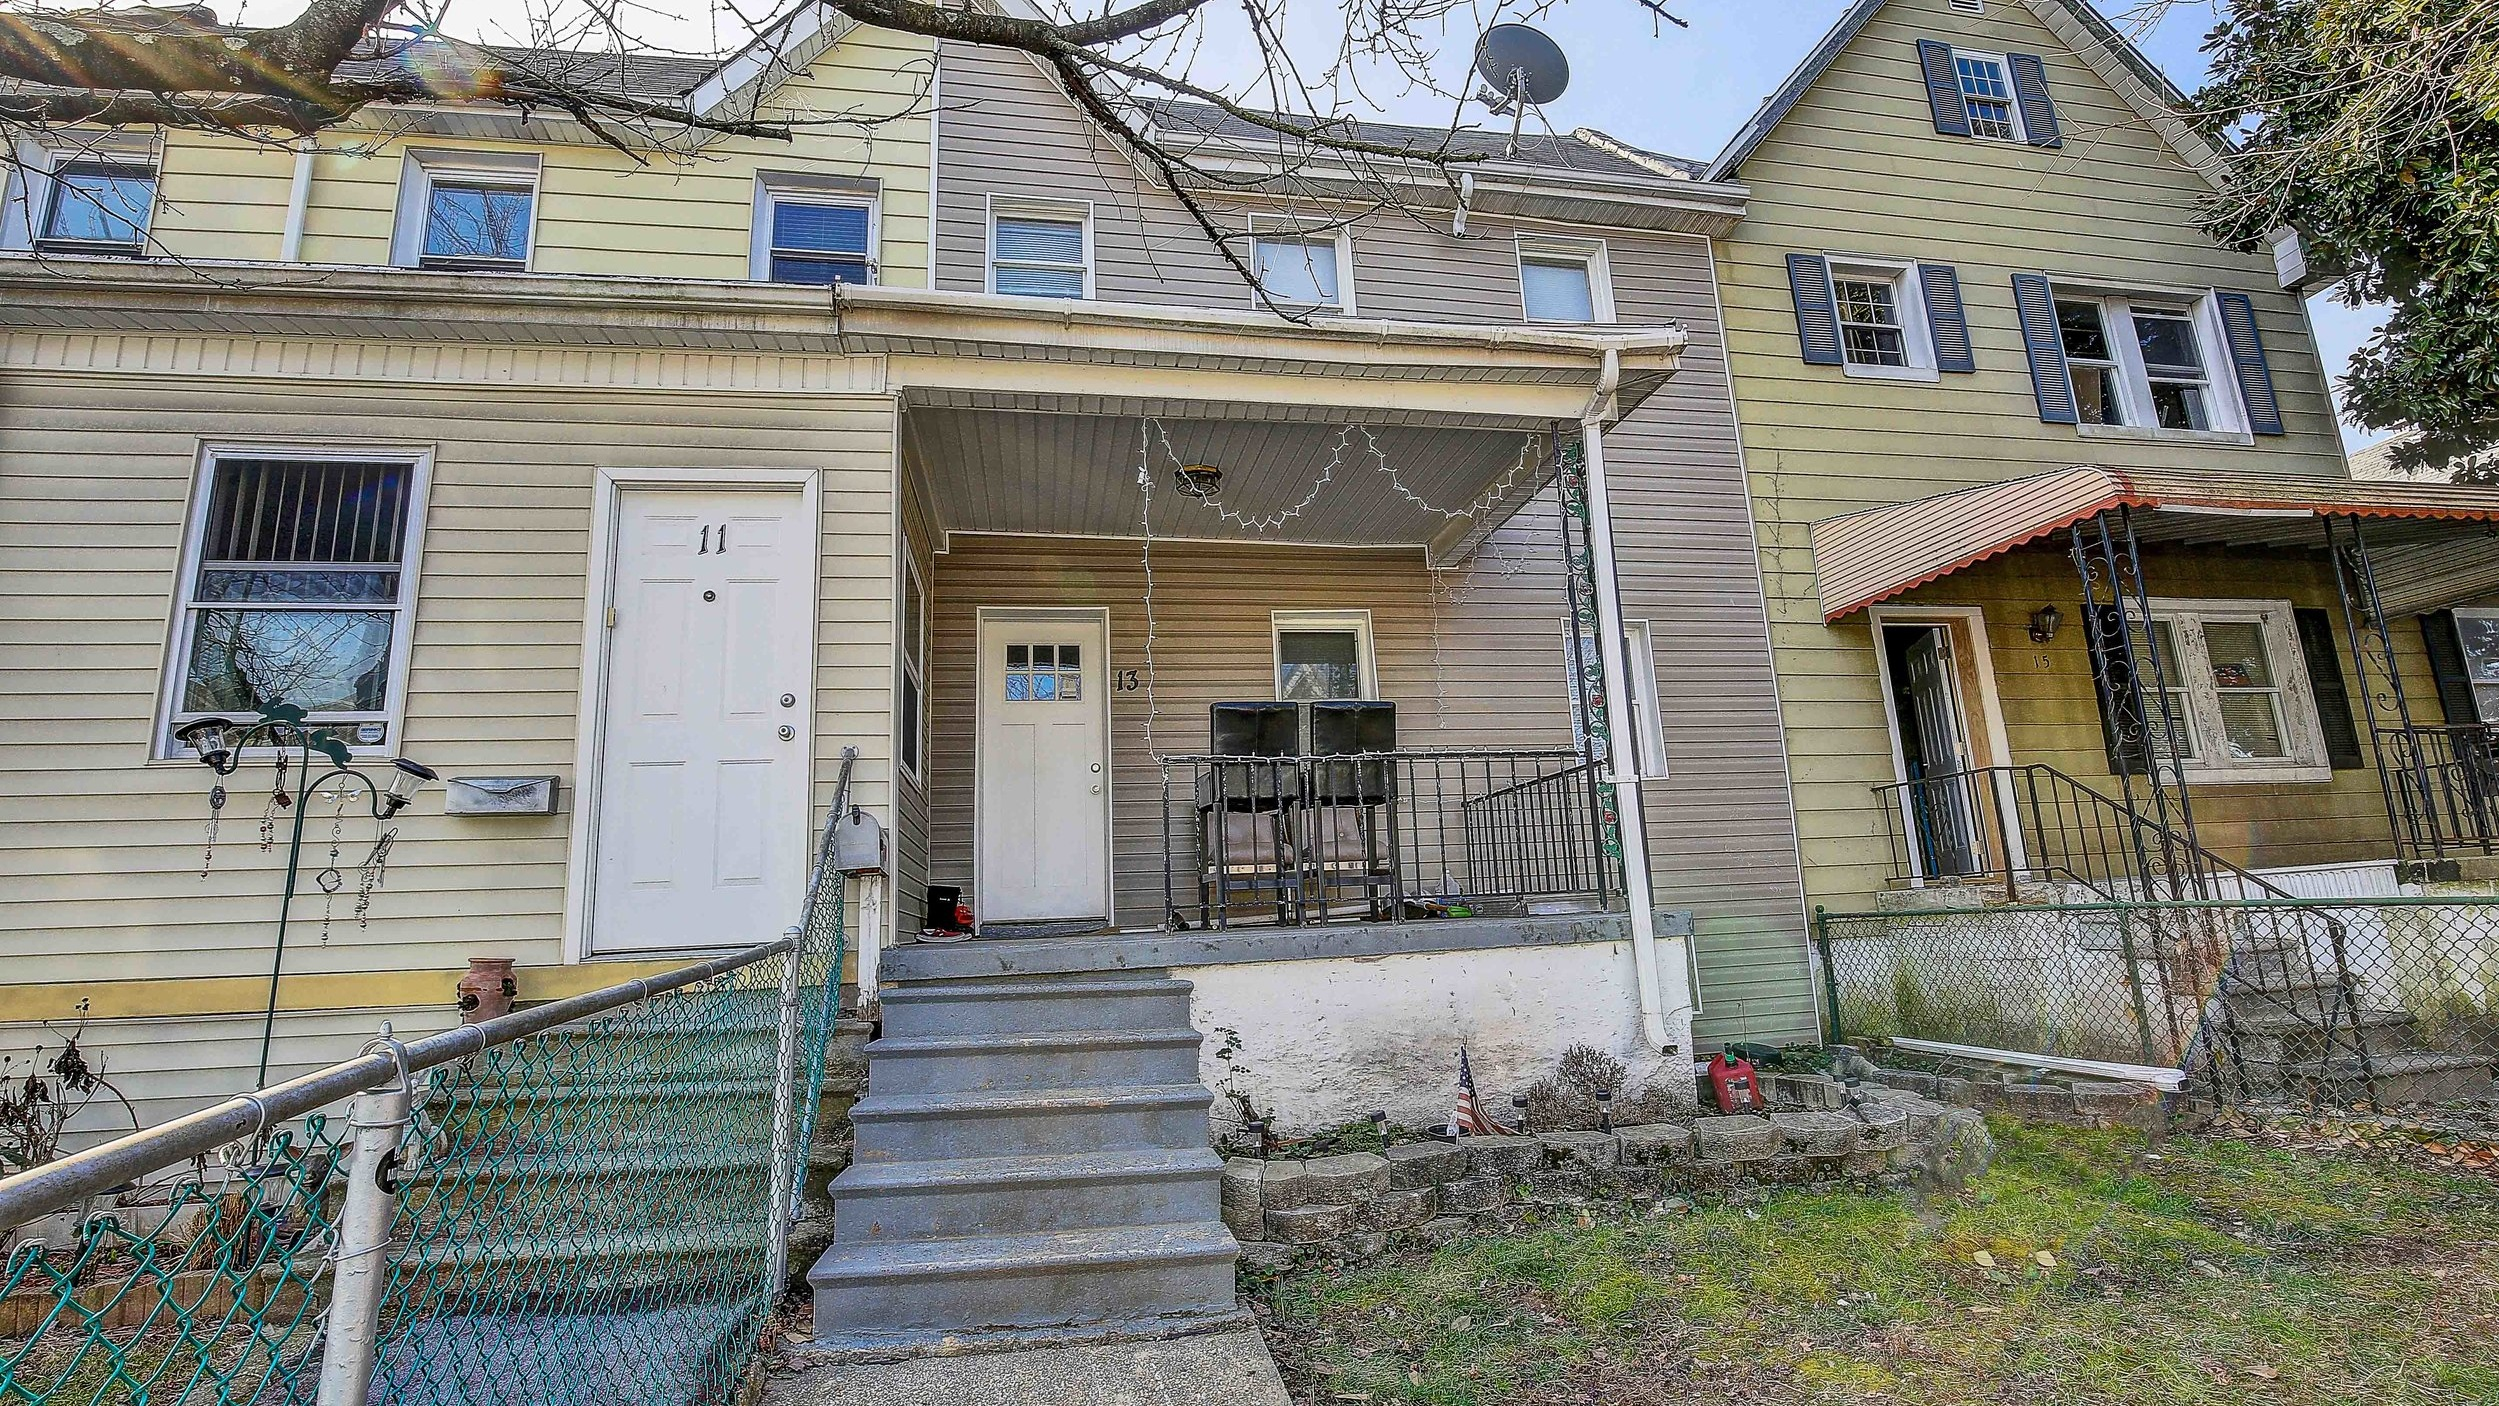 under contract  | OFFERED AT $90,000  13 W Talbott Street, BALTIMORE  SCHEDULE YOUR PRIVATE TOUR | 443.889.3095   learn more >